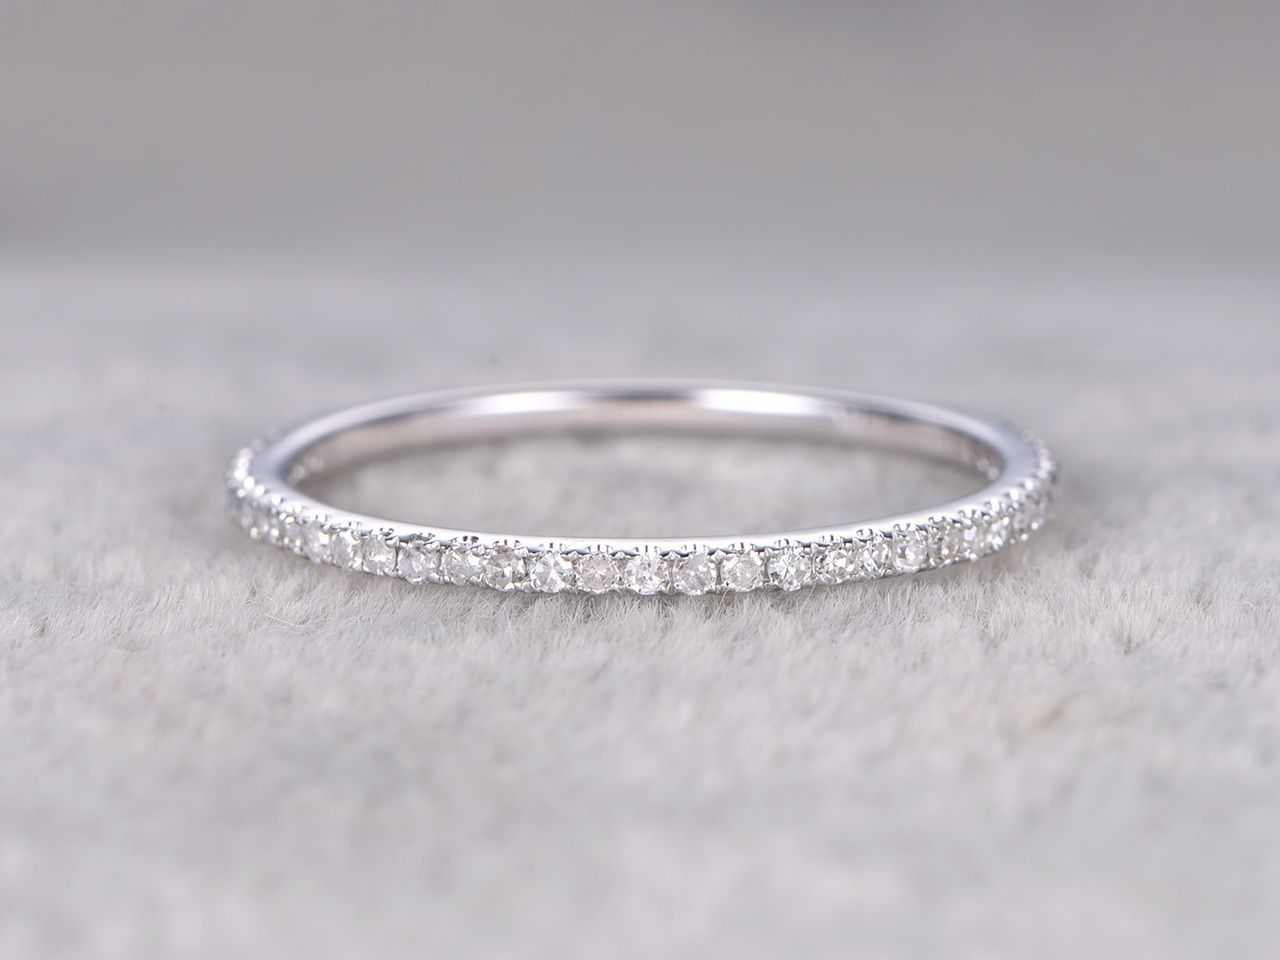 Diamond 3 4 Eternity Rings 14k White Gold Thin Micro Pave Wedding Band Stacking Ring